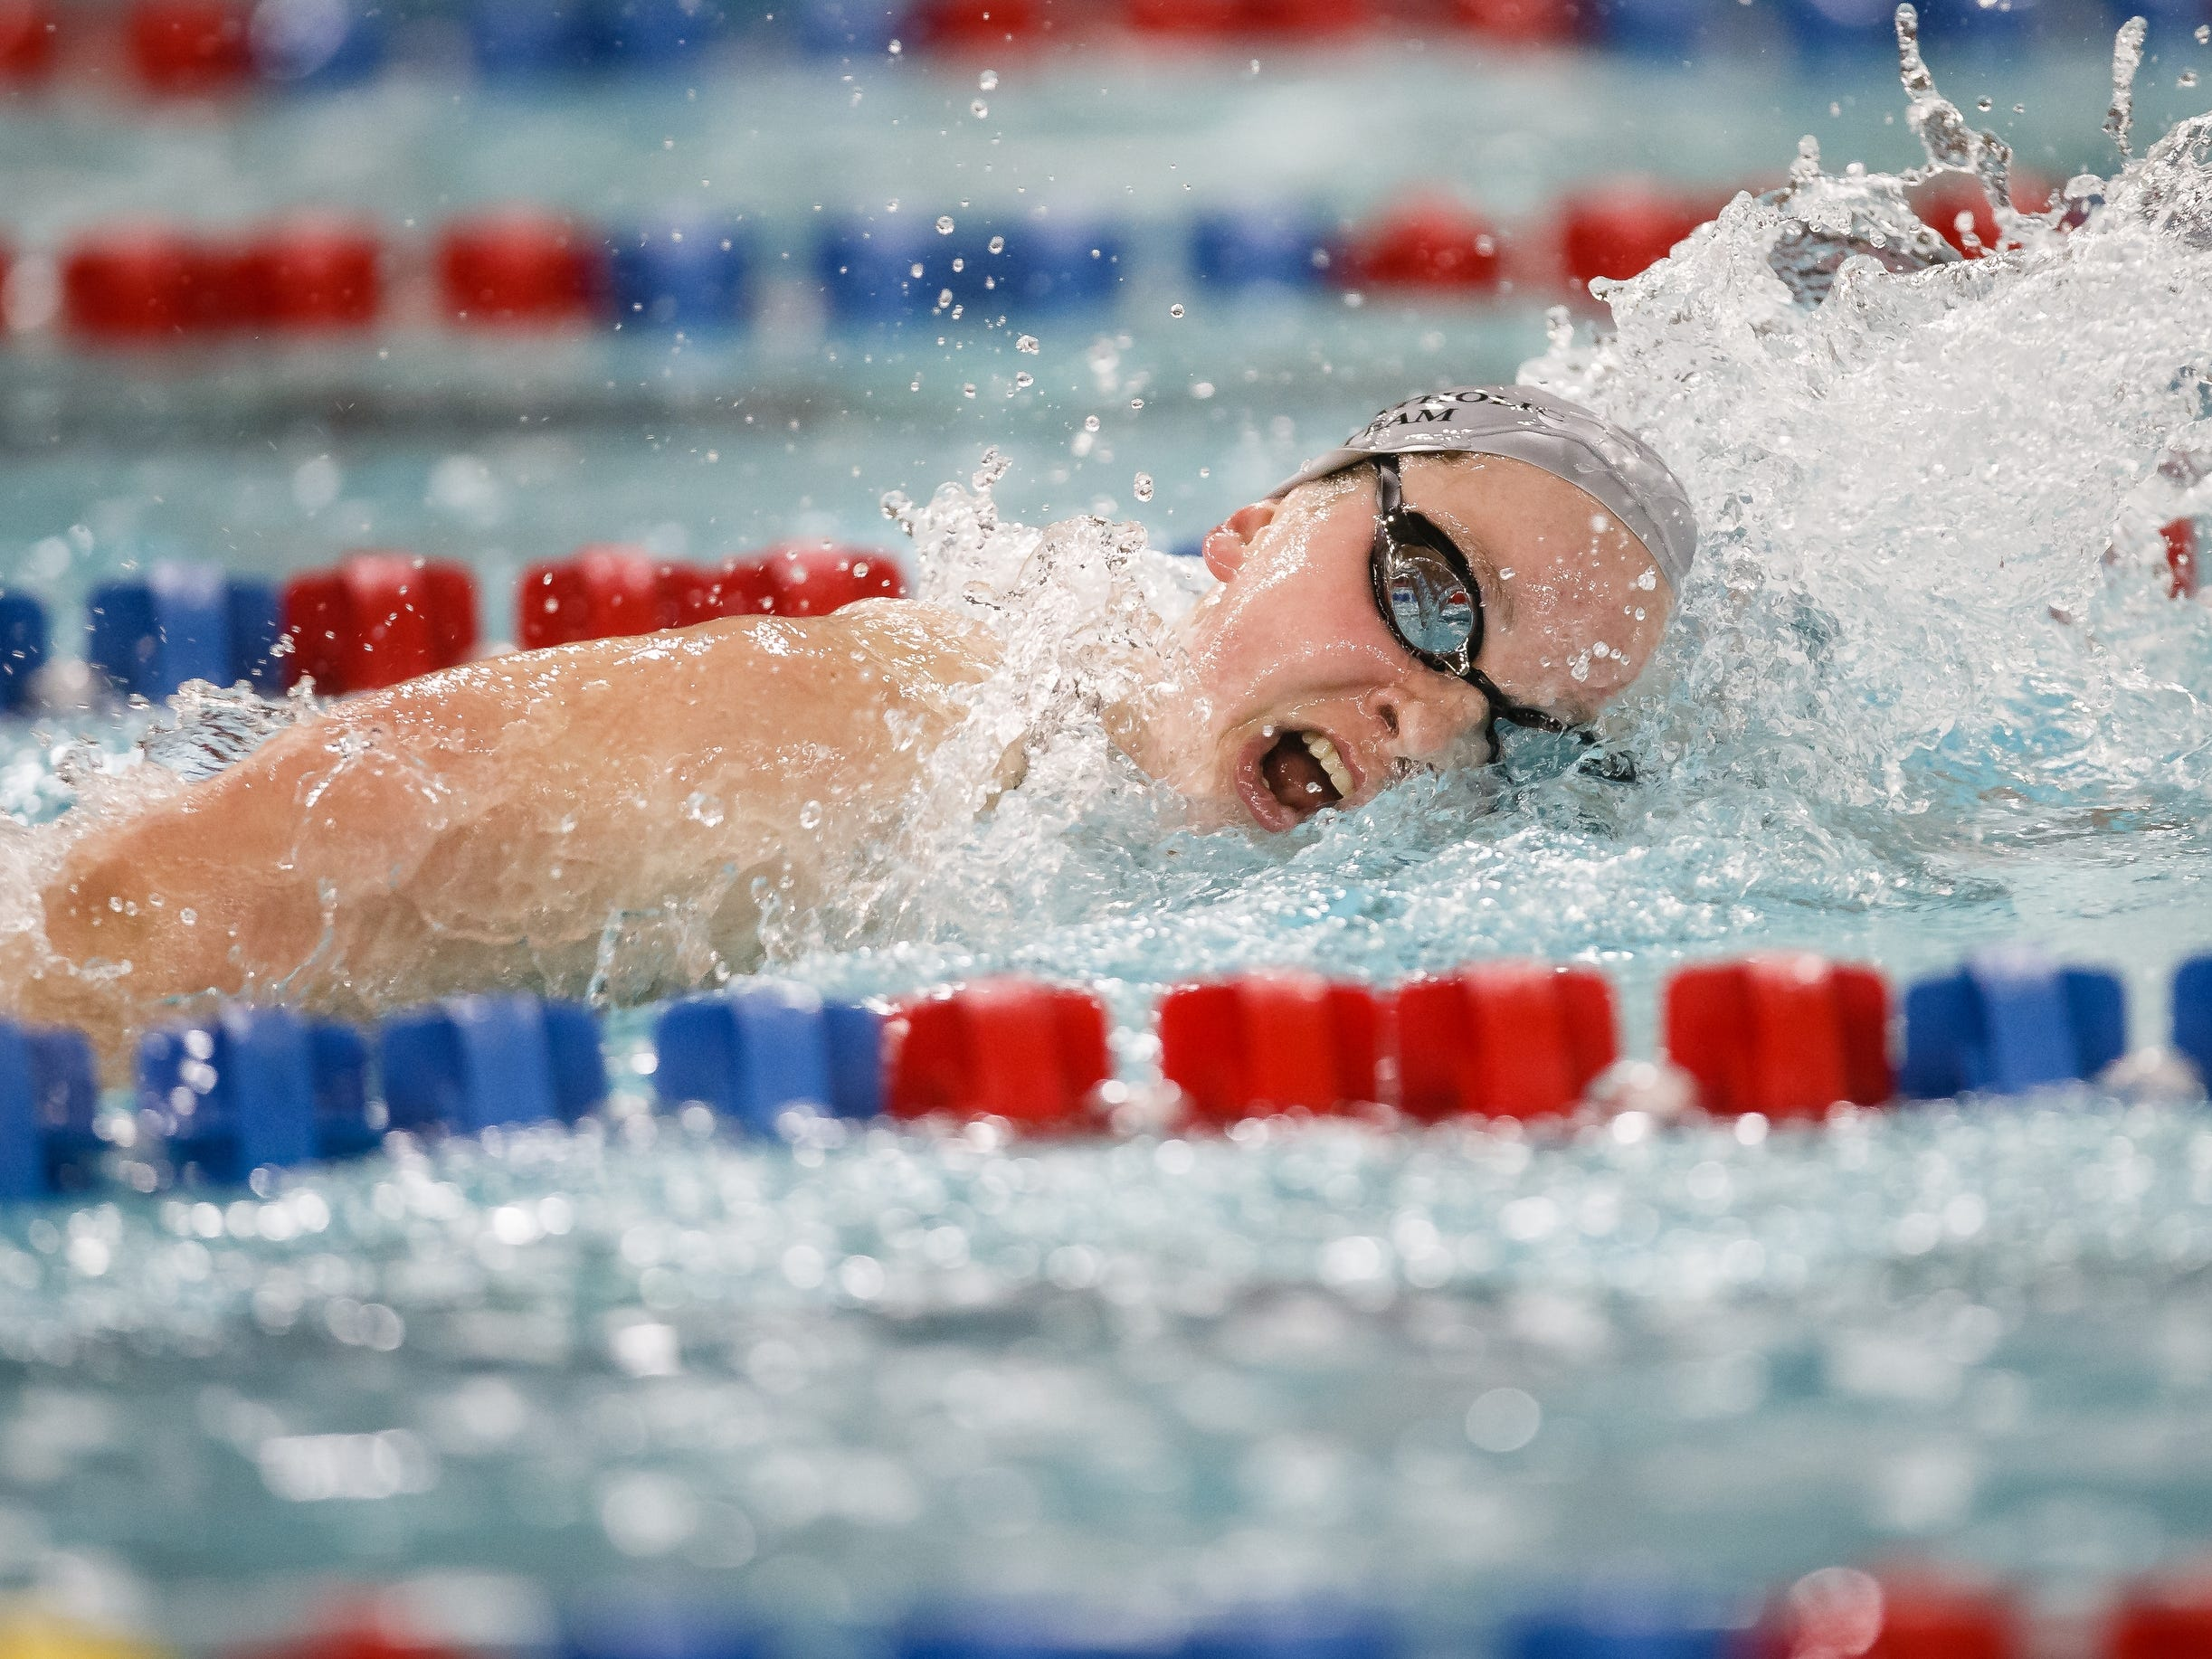 Dowling Catholic's Berit Quass swims in the 500 yard freestyle at the Iowa girls state swimming meet on Saturday, Nov. 3, 2018, in Marshalltown.